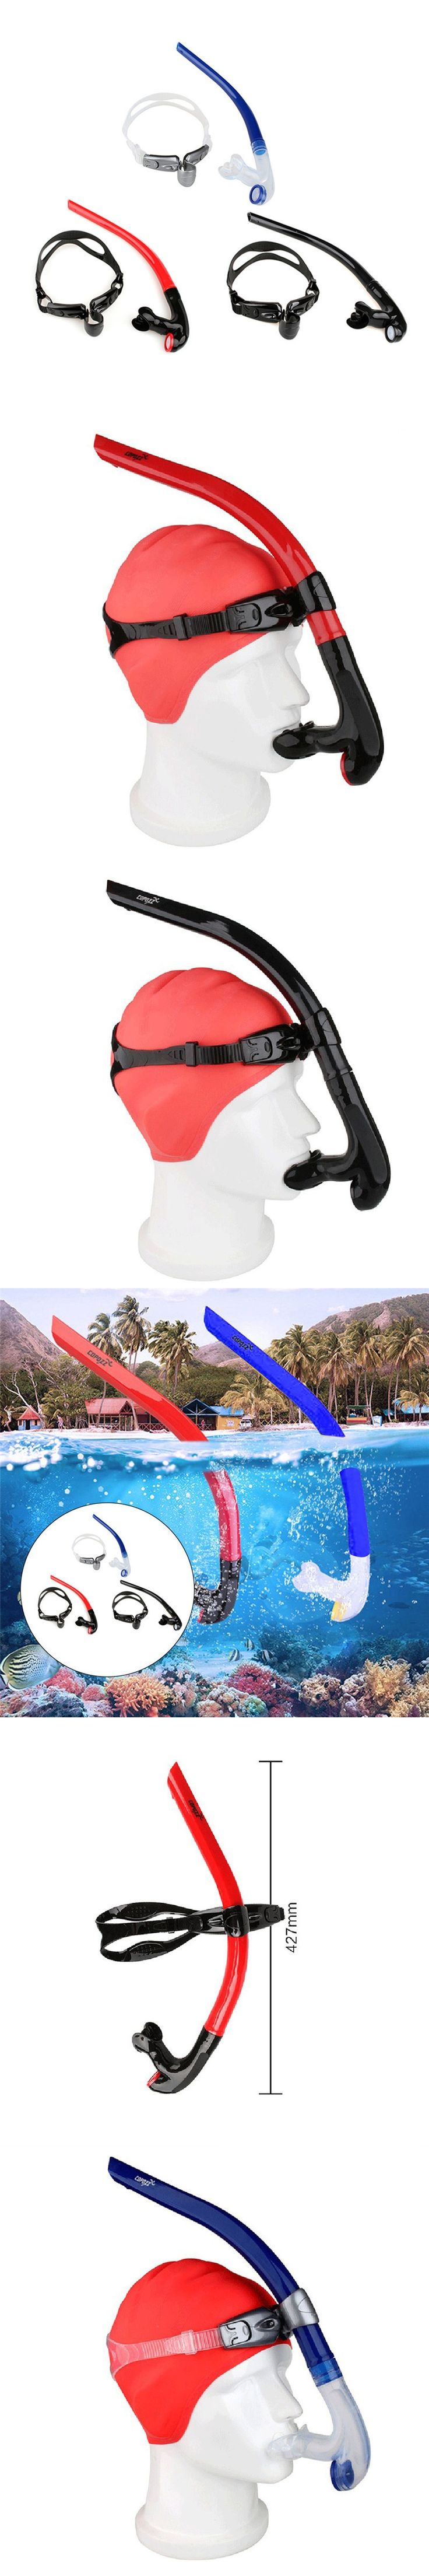 COPOZZ Front Swimming Breathing Tube Swimming Water Sports Equipments Dry Snorkel Tube Underwater Diving Snorkeling Accessories